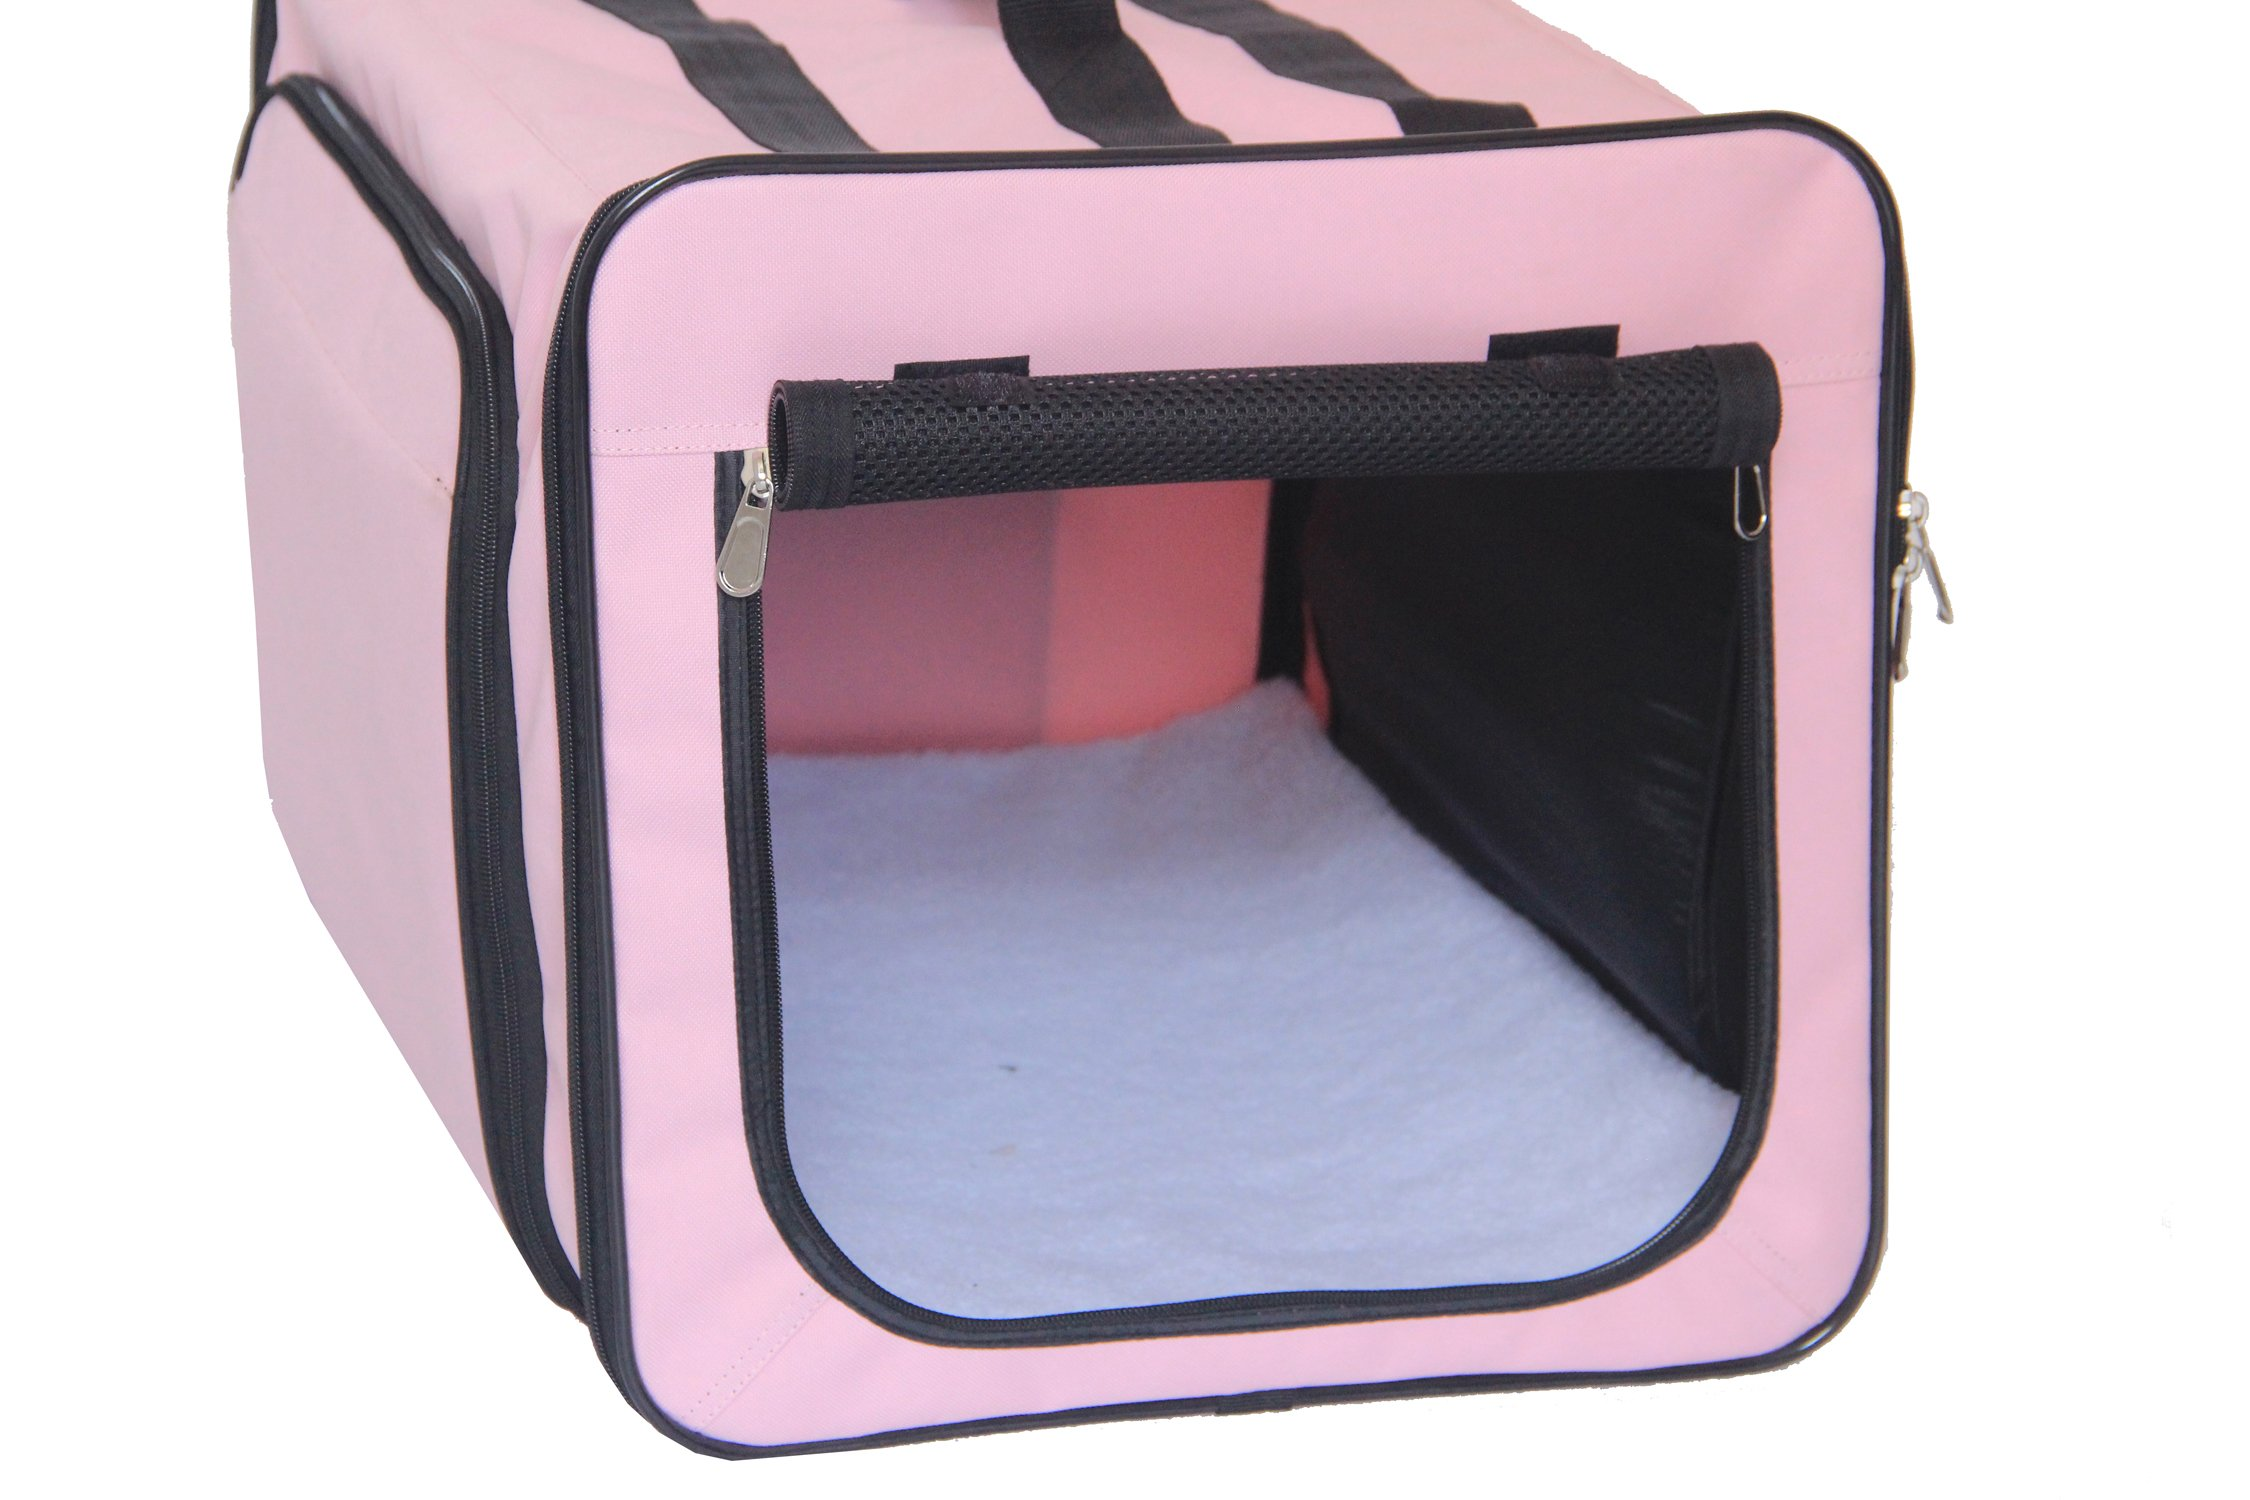 Pet Life Capacious' Dual-Sided Expandable Spacious Wire Folding Collapsible Lightweight Pet Dog Crate Carrier House, Large, Pink by Pet Life (Image #4)